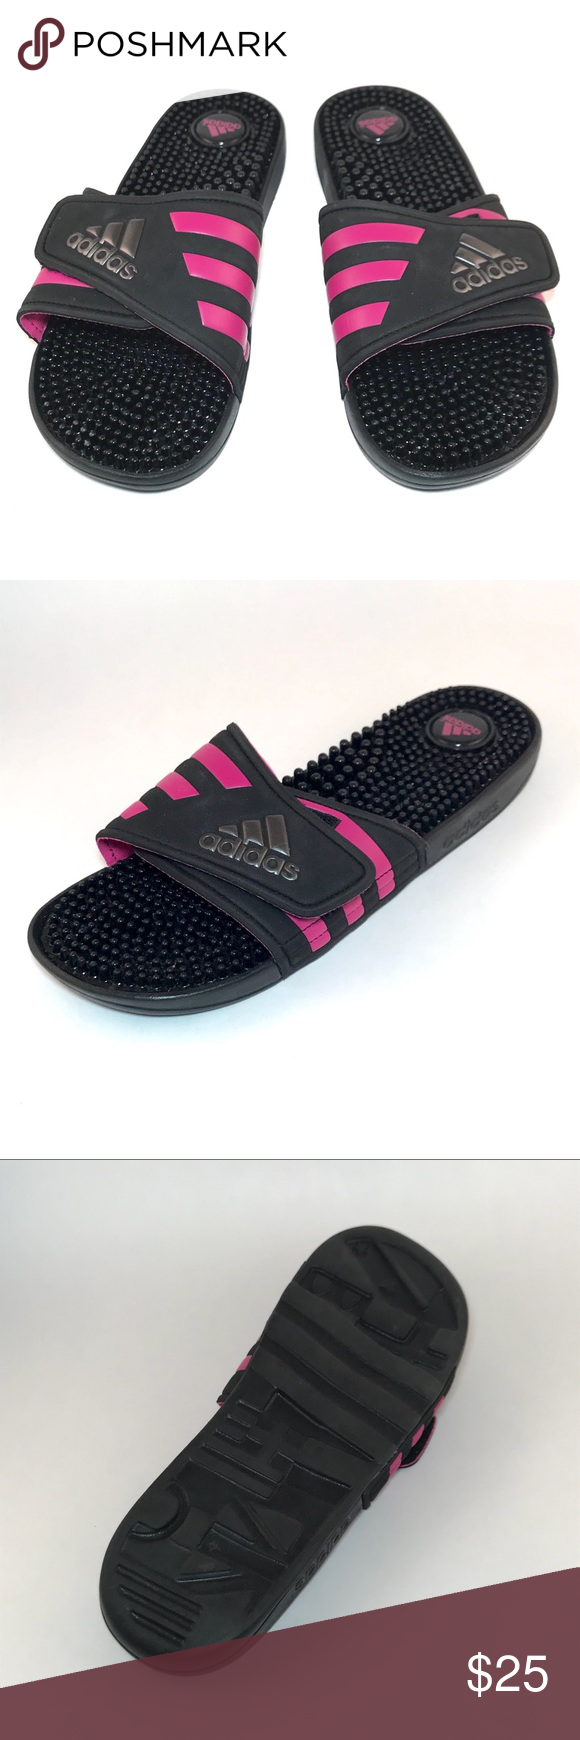 137aa203c52  adidas  black and pink Adissage slides Stylish black sandals with pink  details. Logo design on uppers. Textured balance. Excellent used condition.